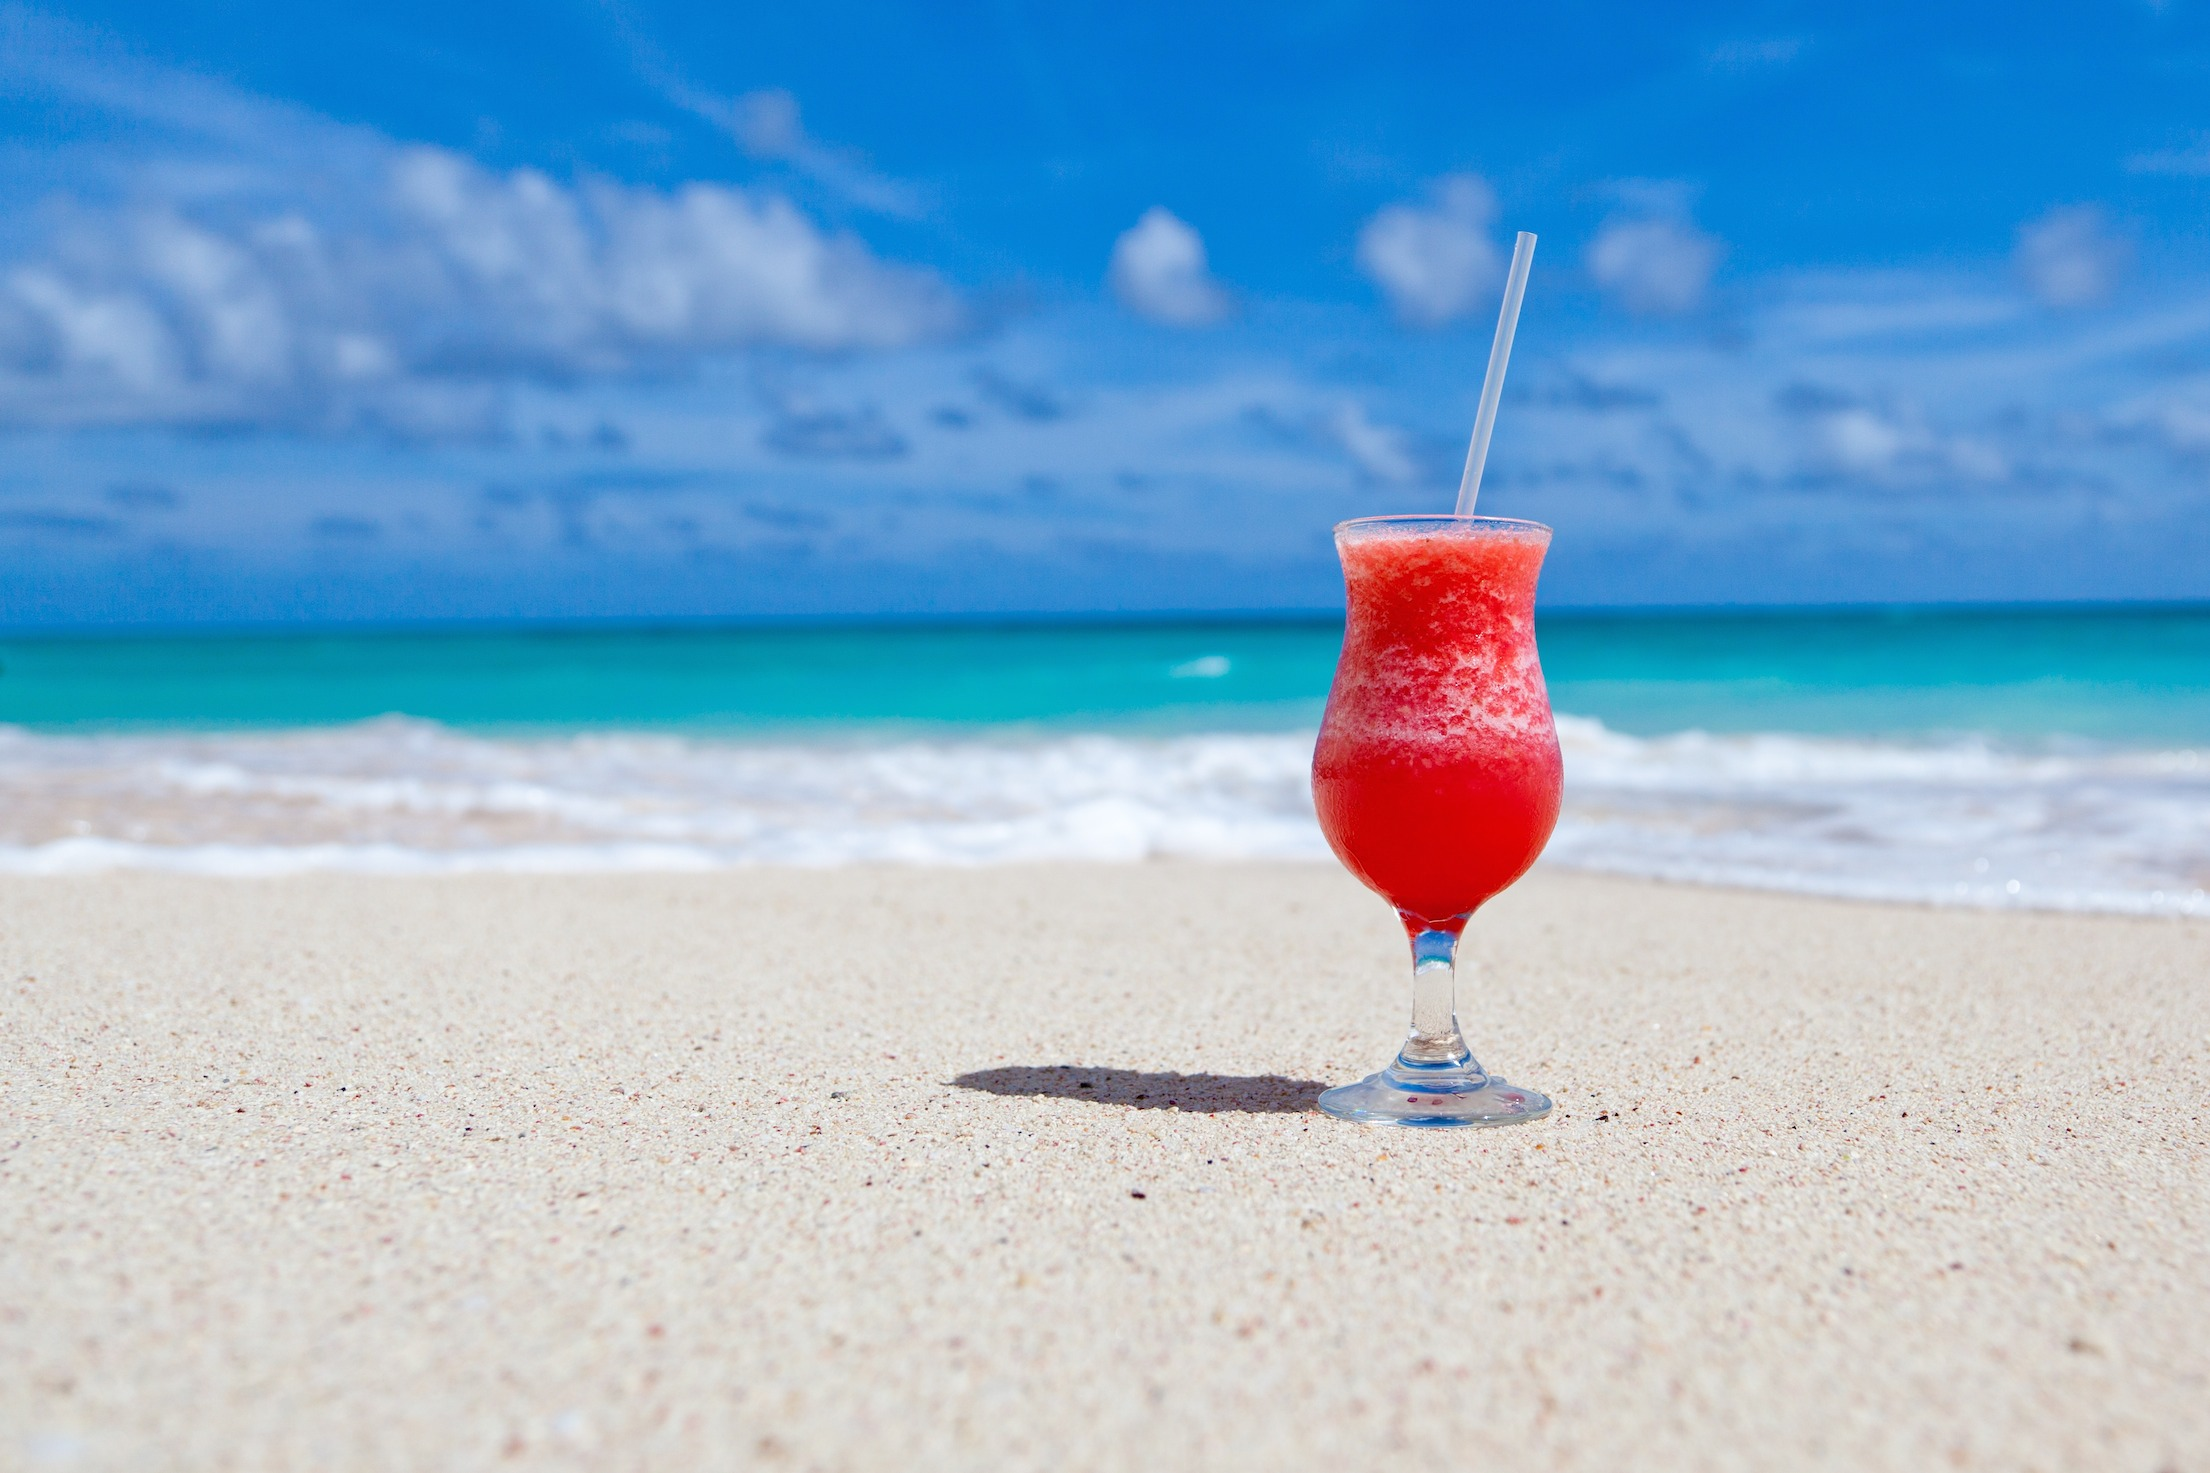 Awesome vitamin Sea